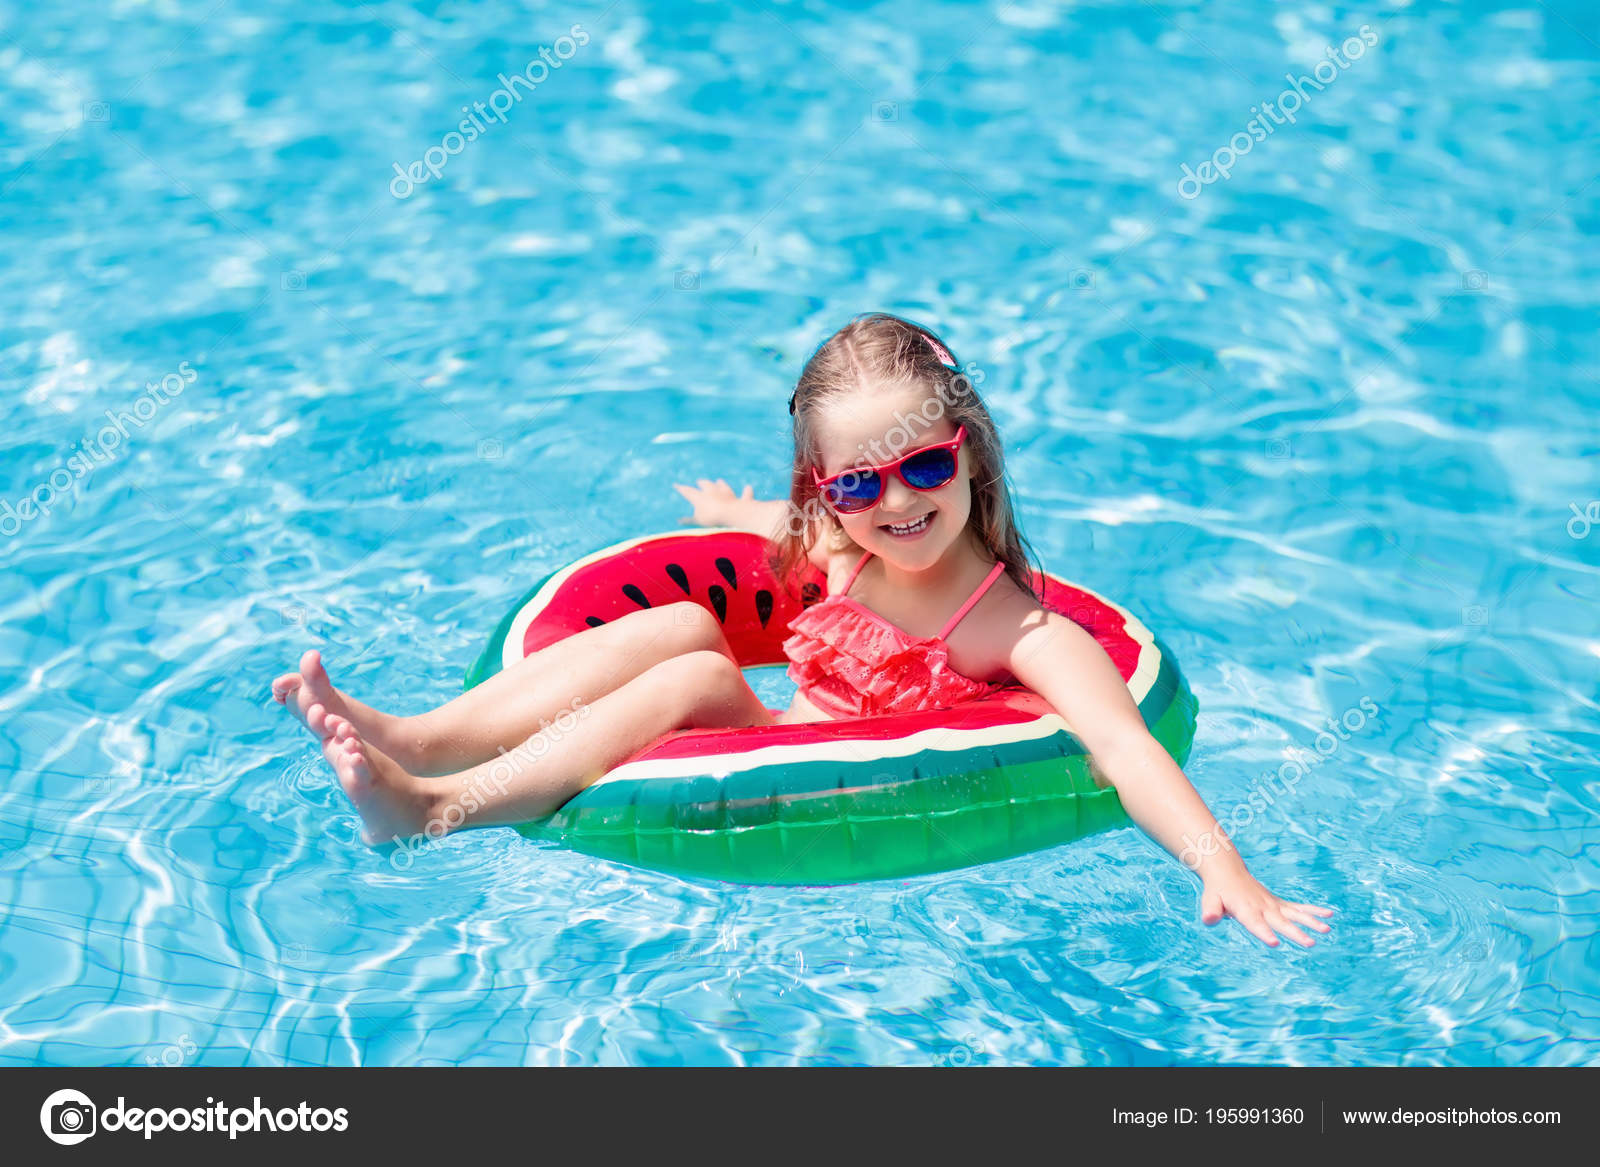 827de6c9b3 Child with watermelon inflatable ring in swimming pool. Little girl learning  to swim in outdoor pool of tropical resort. Kid eye wear.